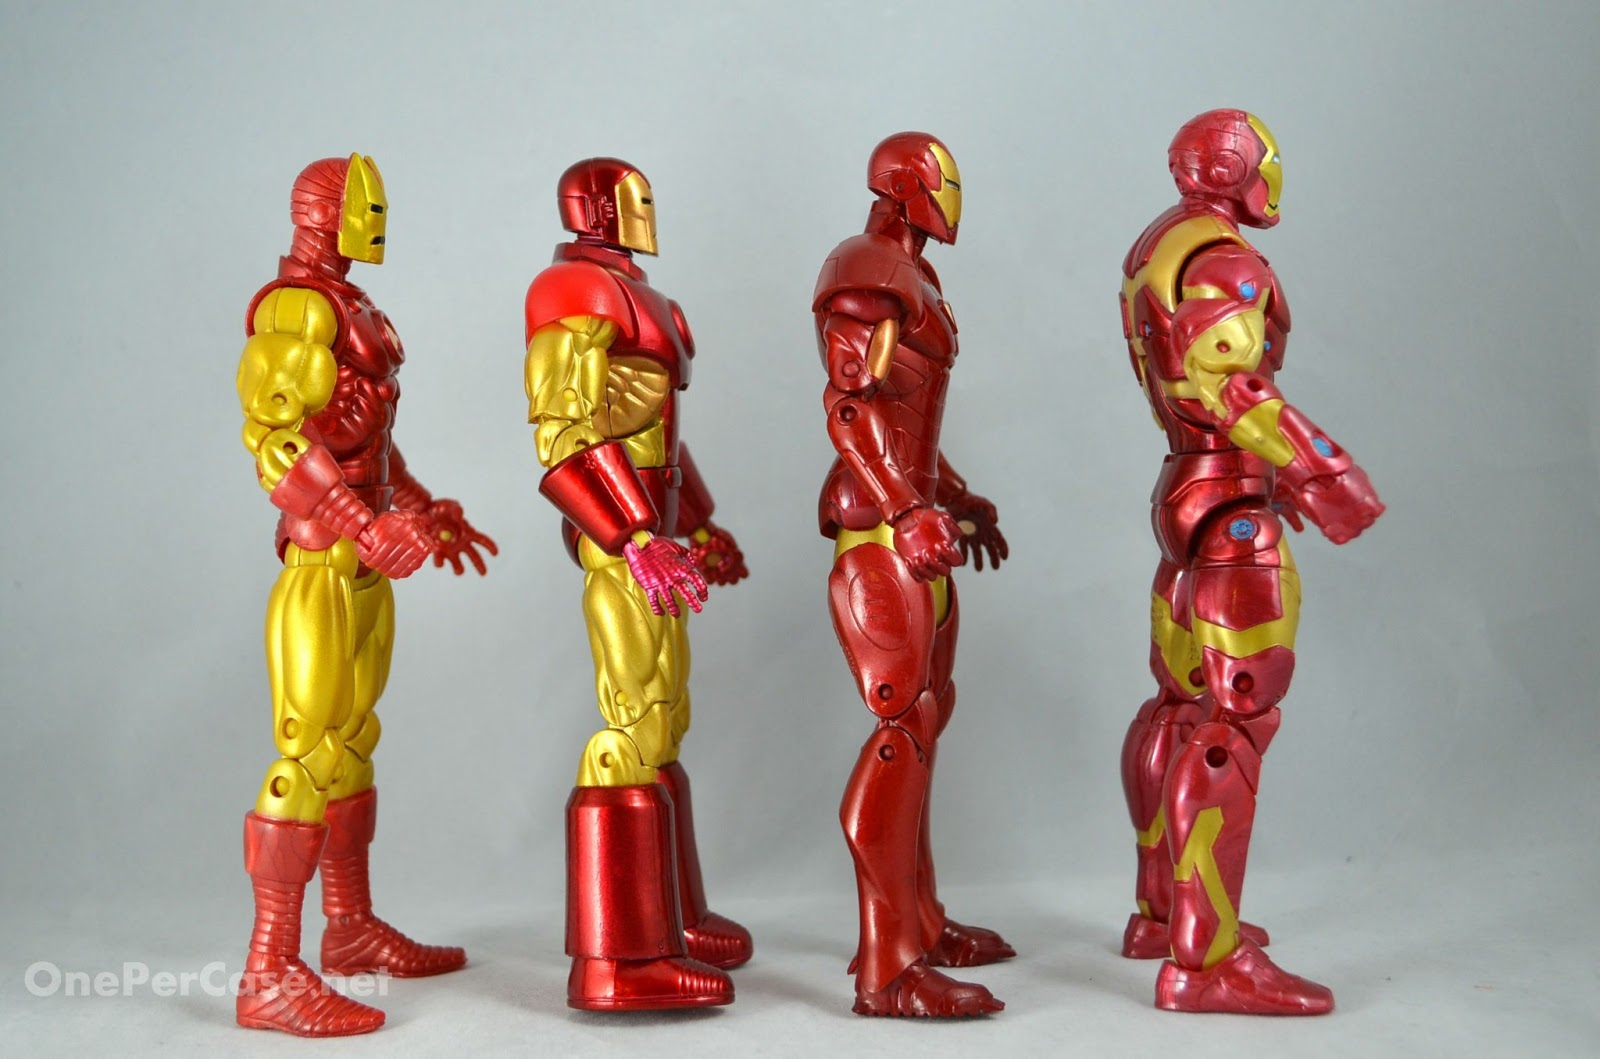 Best Paint For Hasbro Action Figures